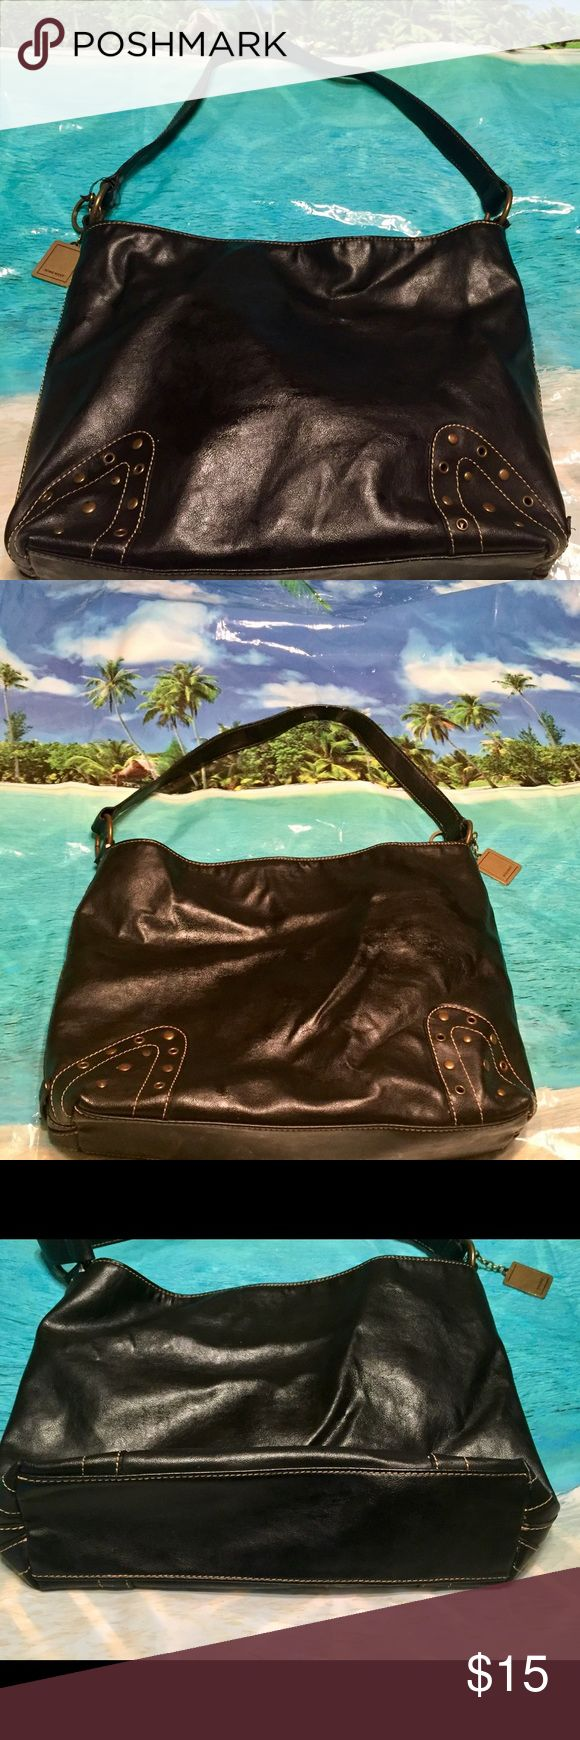 Nine West Purse Light weight black bag with bronze nail heads   on each corner front and back. Original key chain is still attached. Nine West Bags Shoulder Bags